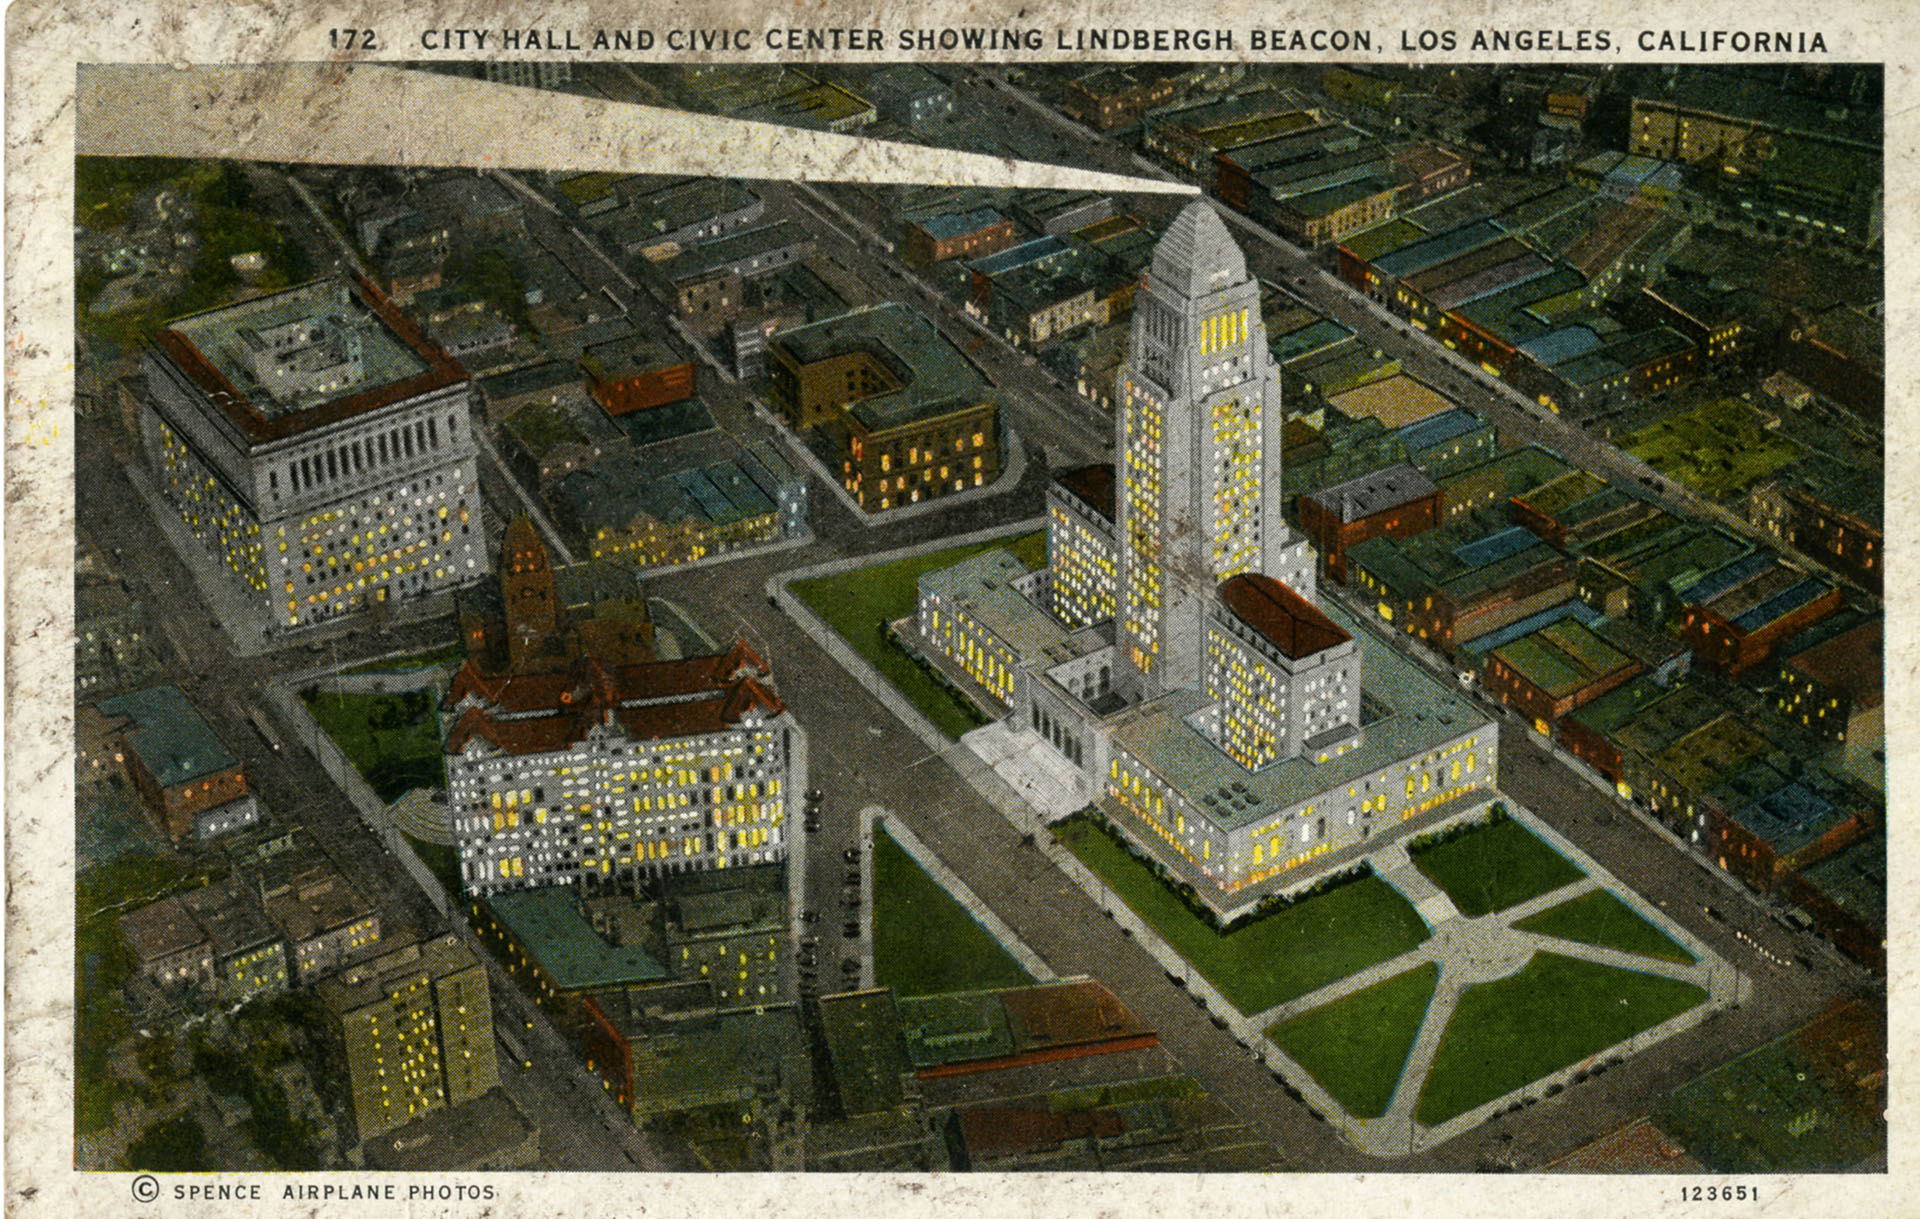 Postcard of Los Angeles City Hall at night, circa 1930s